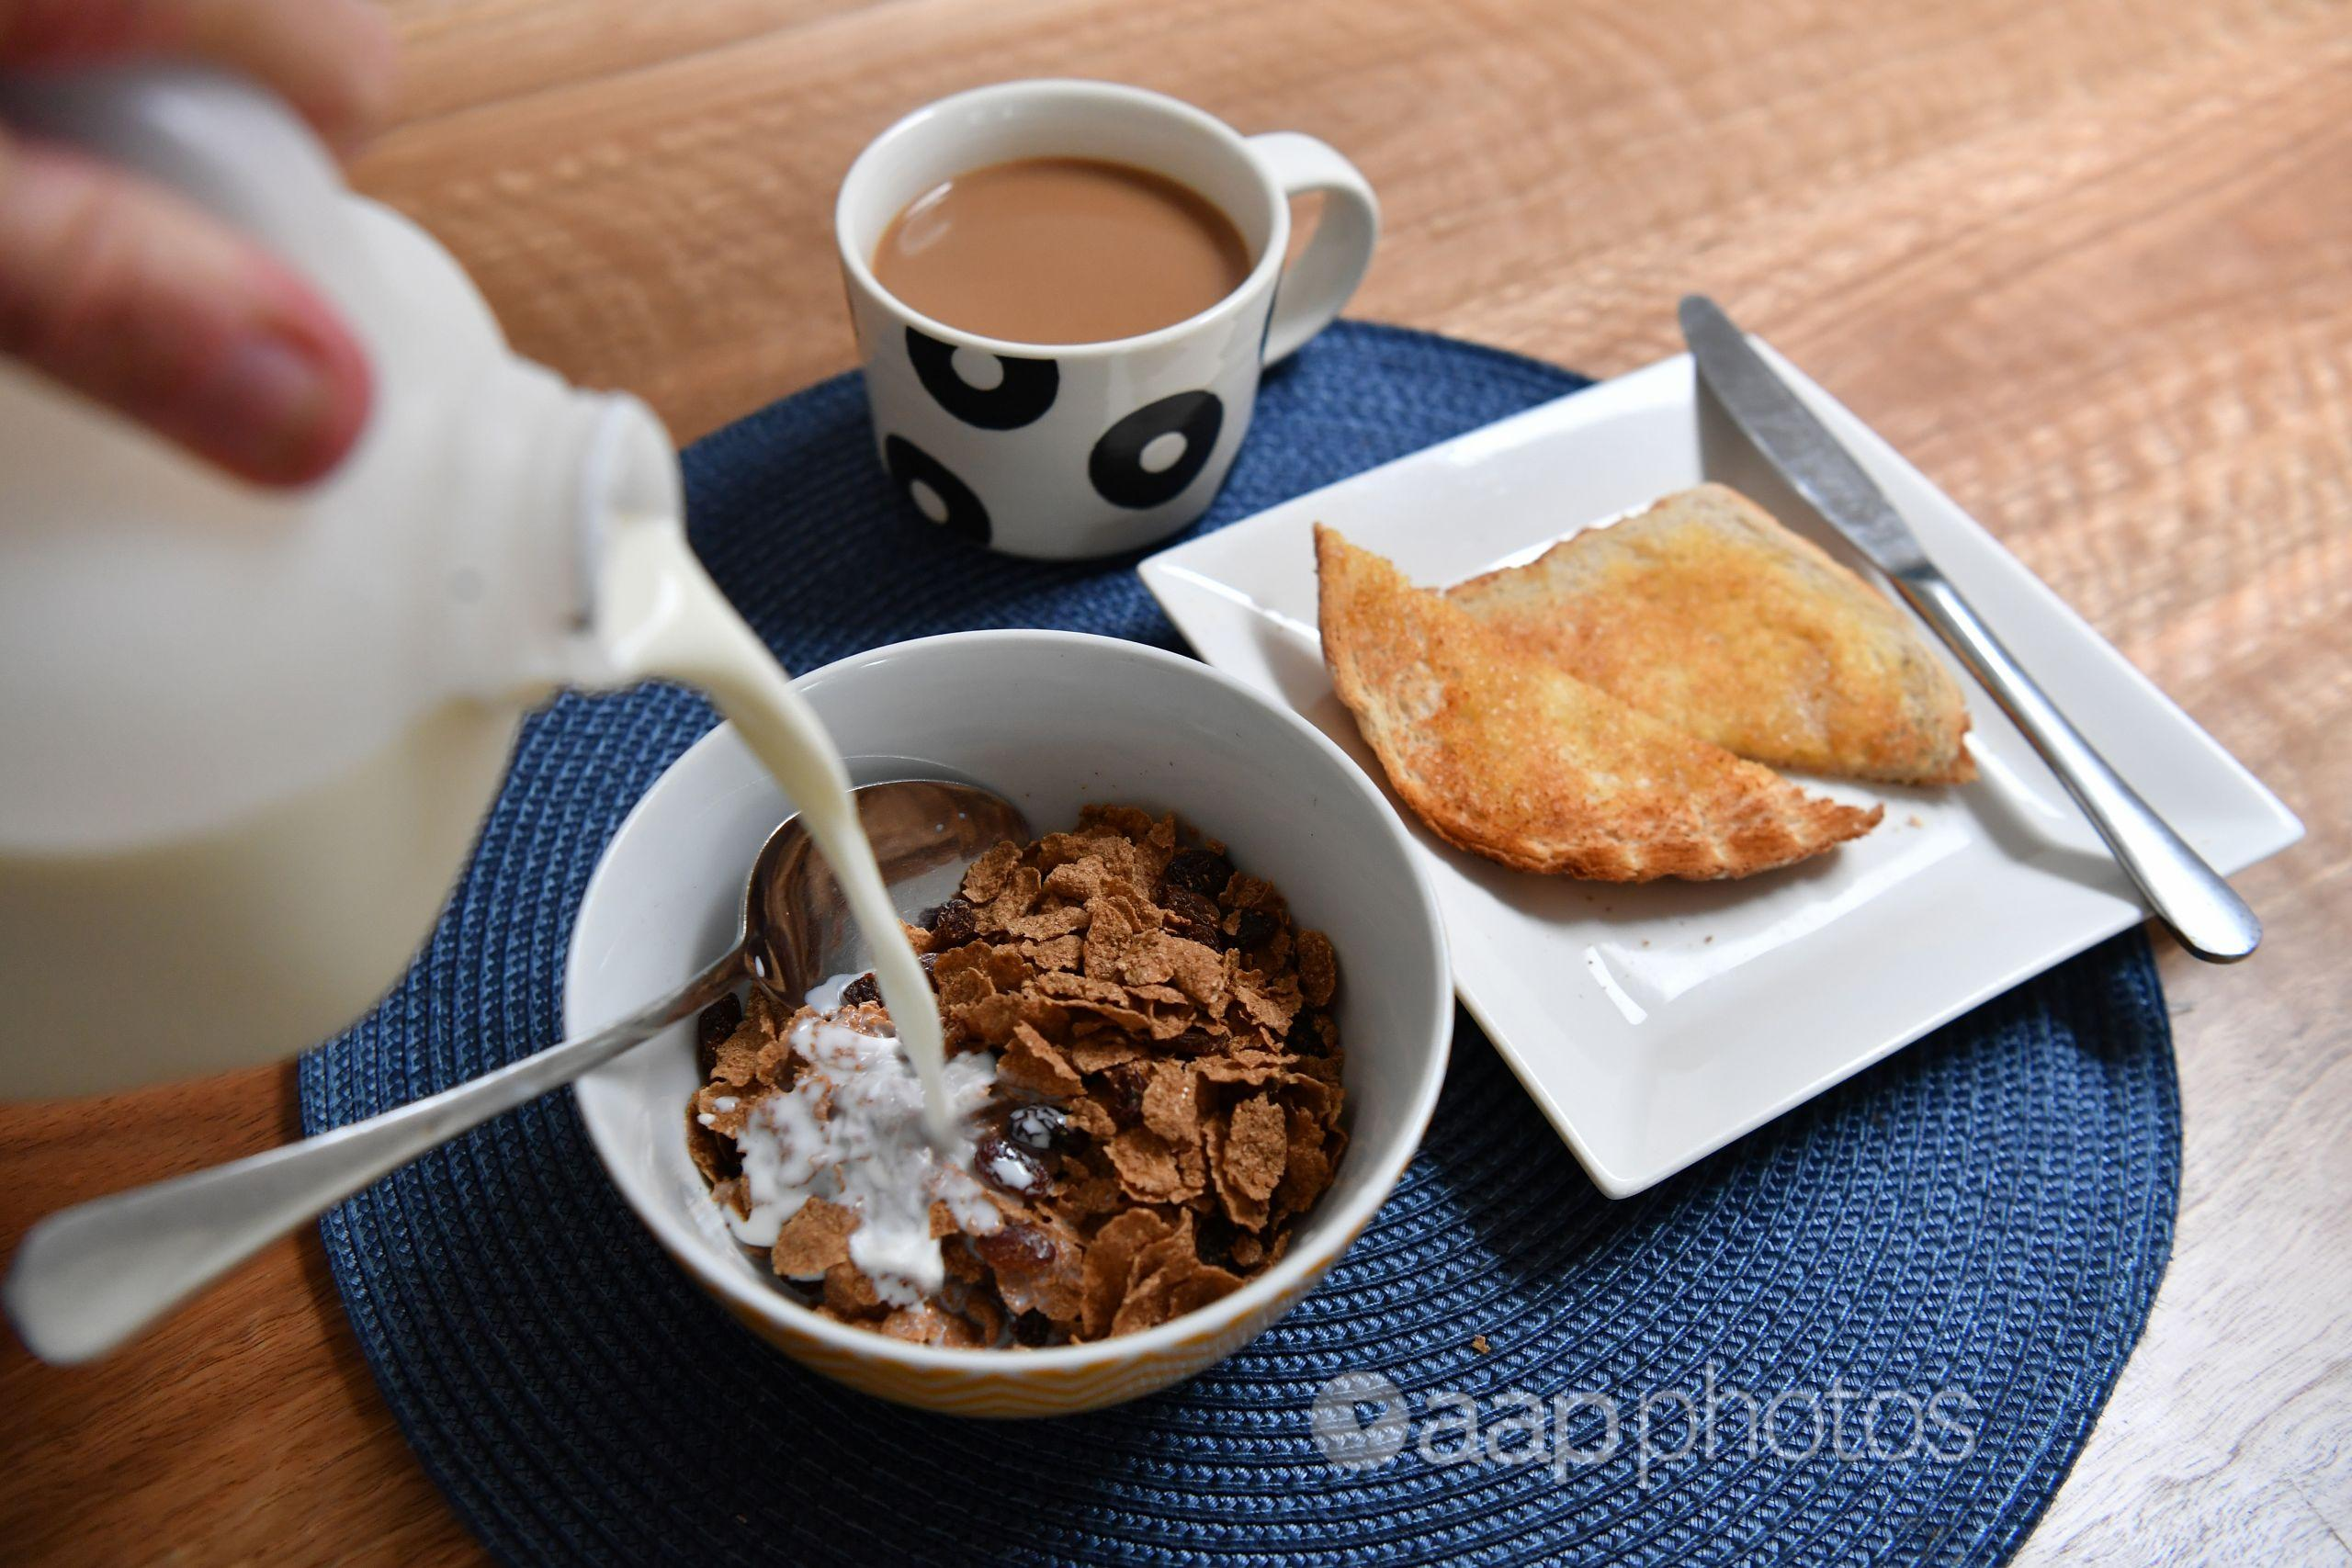 A breakfast of cereal, toast and coffee.